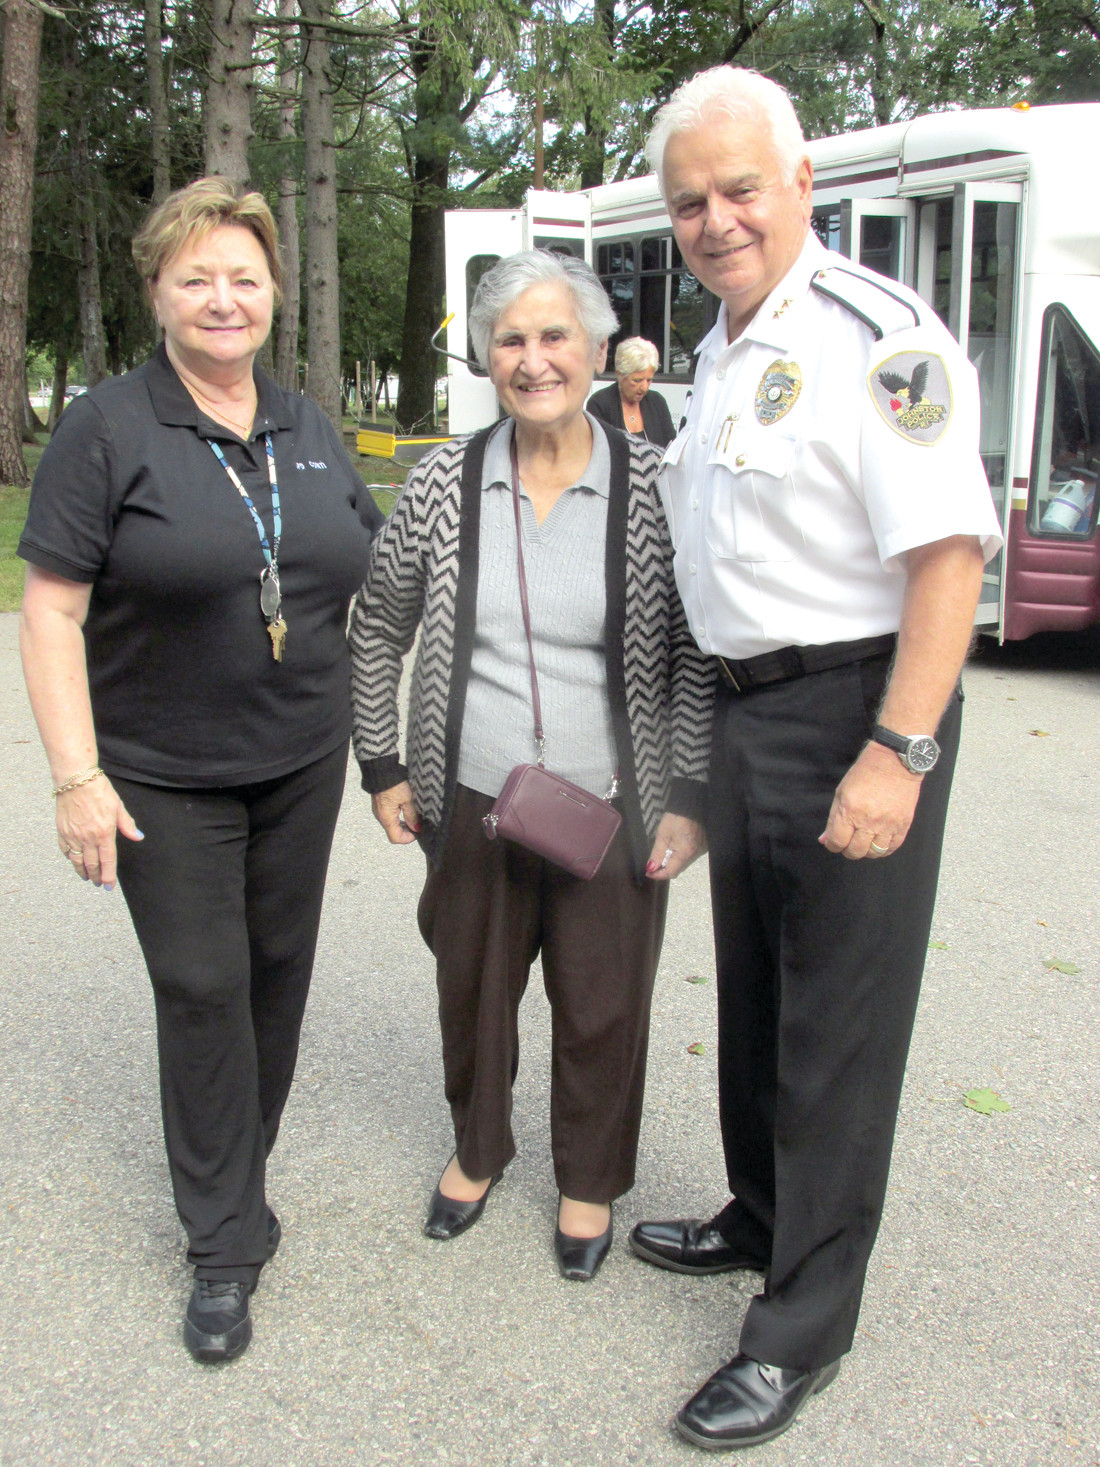 GRAND GREETING: Maria Orsini, who was born in Italy and now lives at The Bridge at Cherry Hill, received a warm welcome from Marie Conti and Johnston Police Chief Richard S. Tamburini at last week's Walk with Cops season finale.